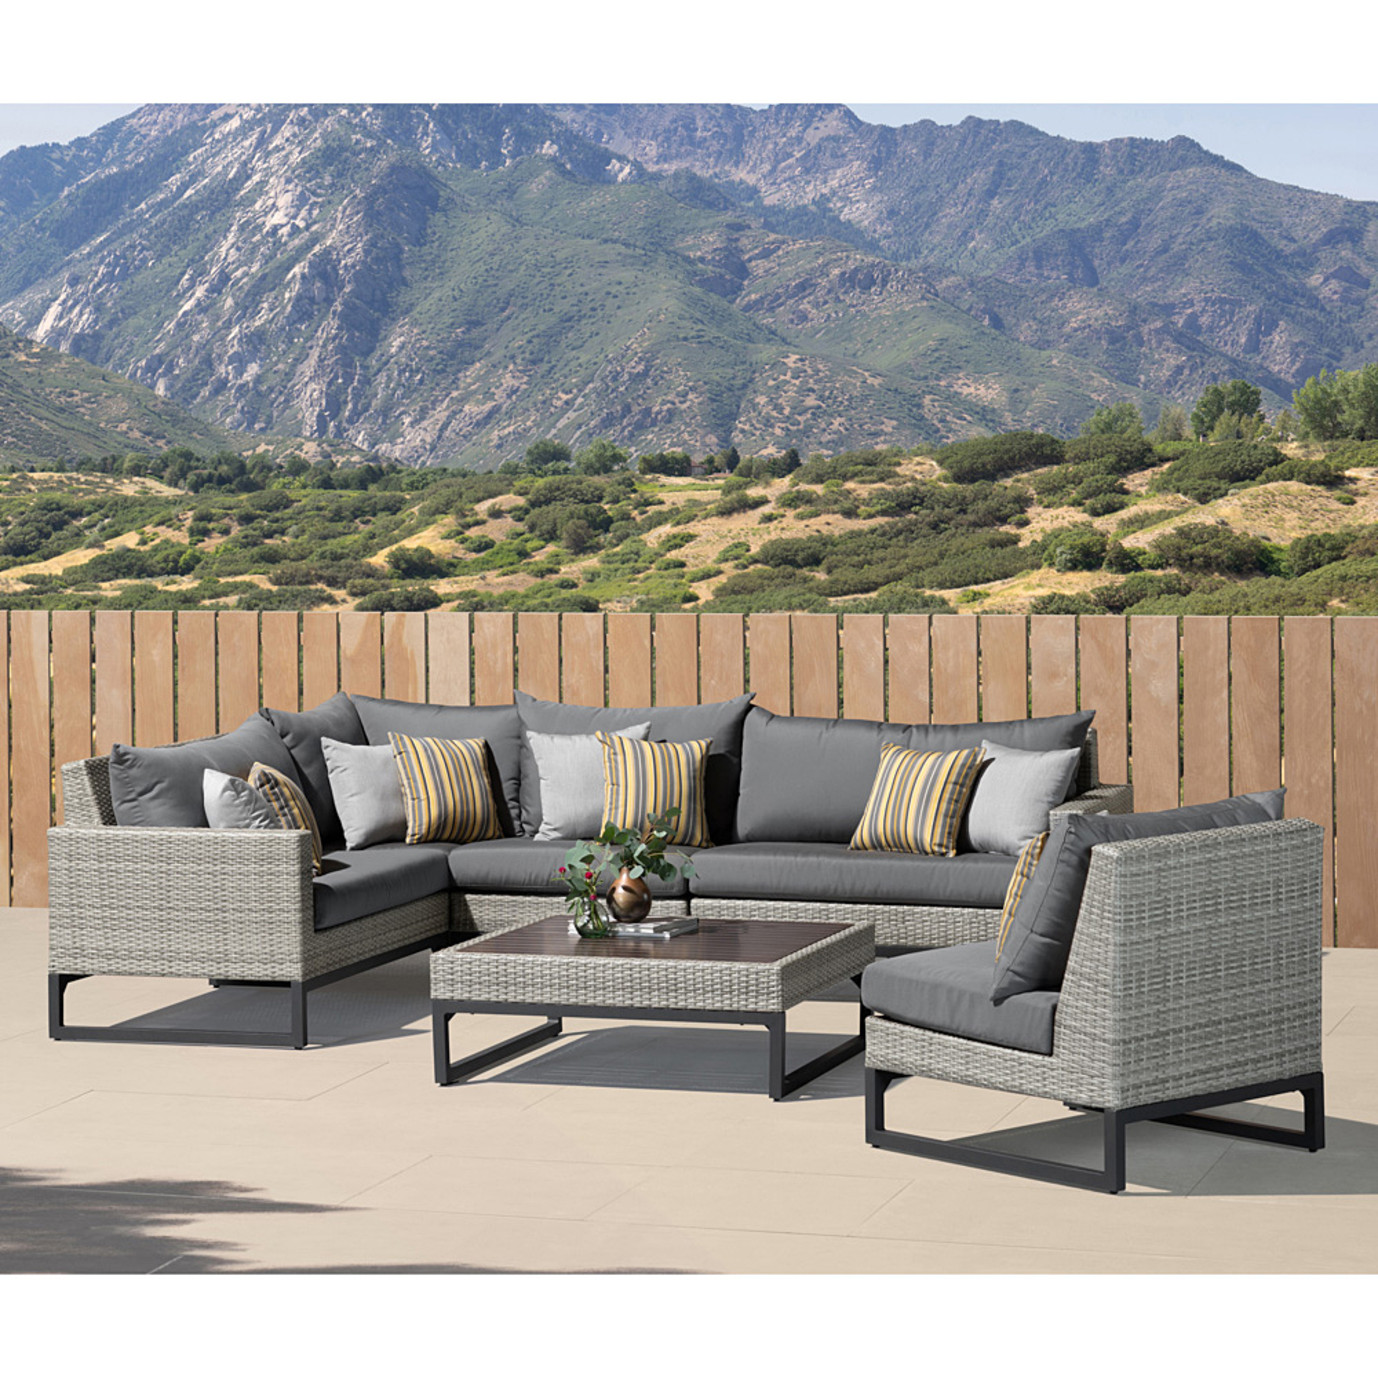 Milo Gray 6 Piece Sectional - Charcoal Gray